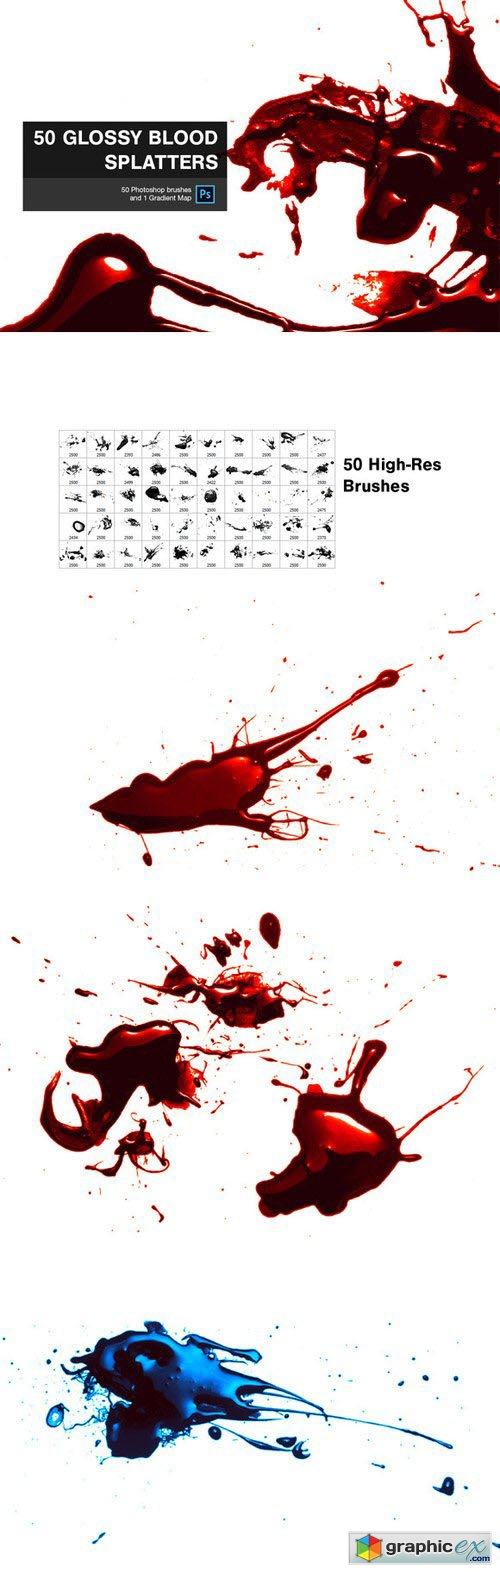 50 Glossy Blood Splatters